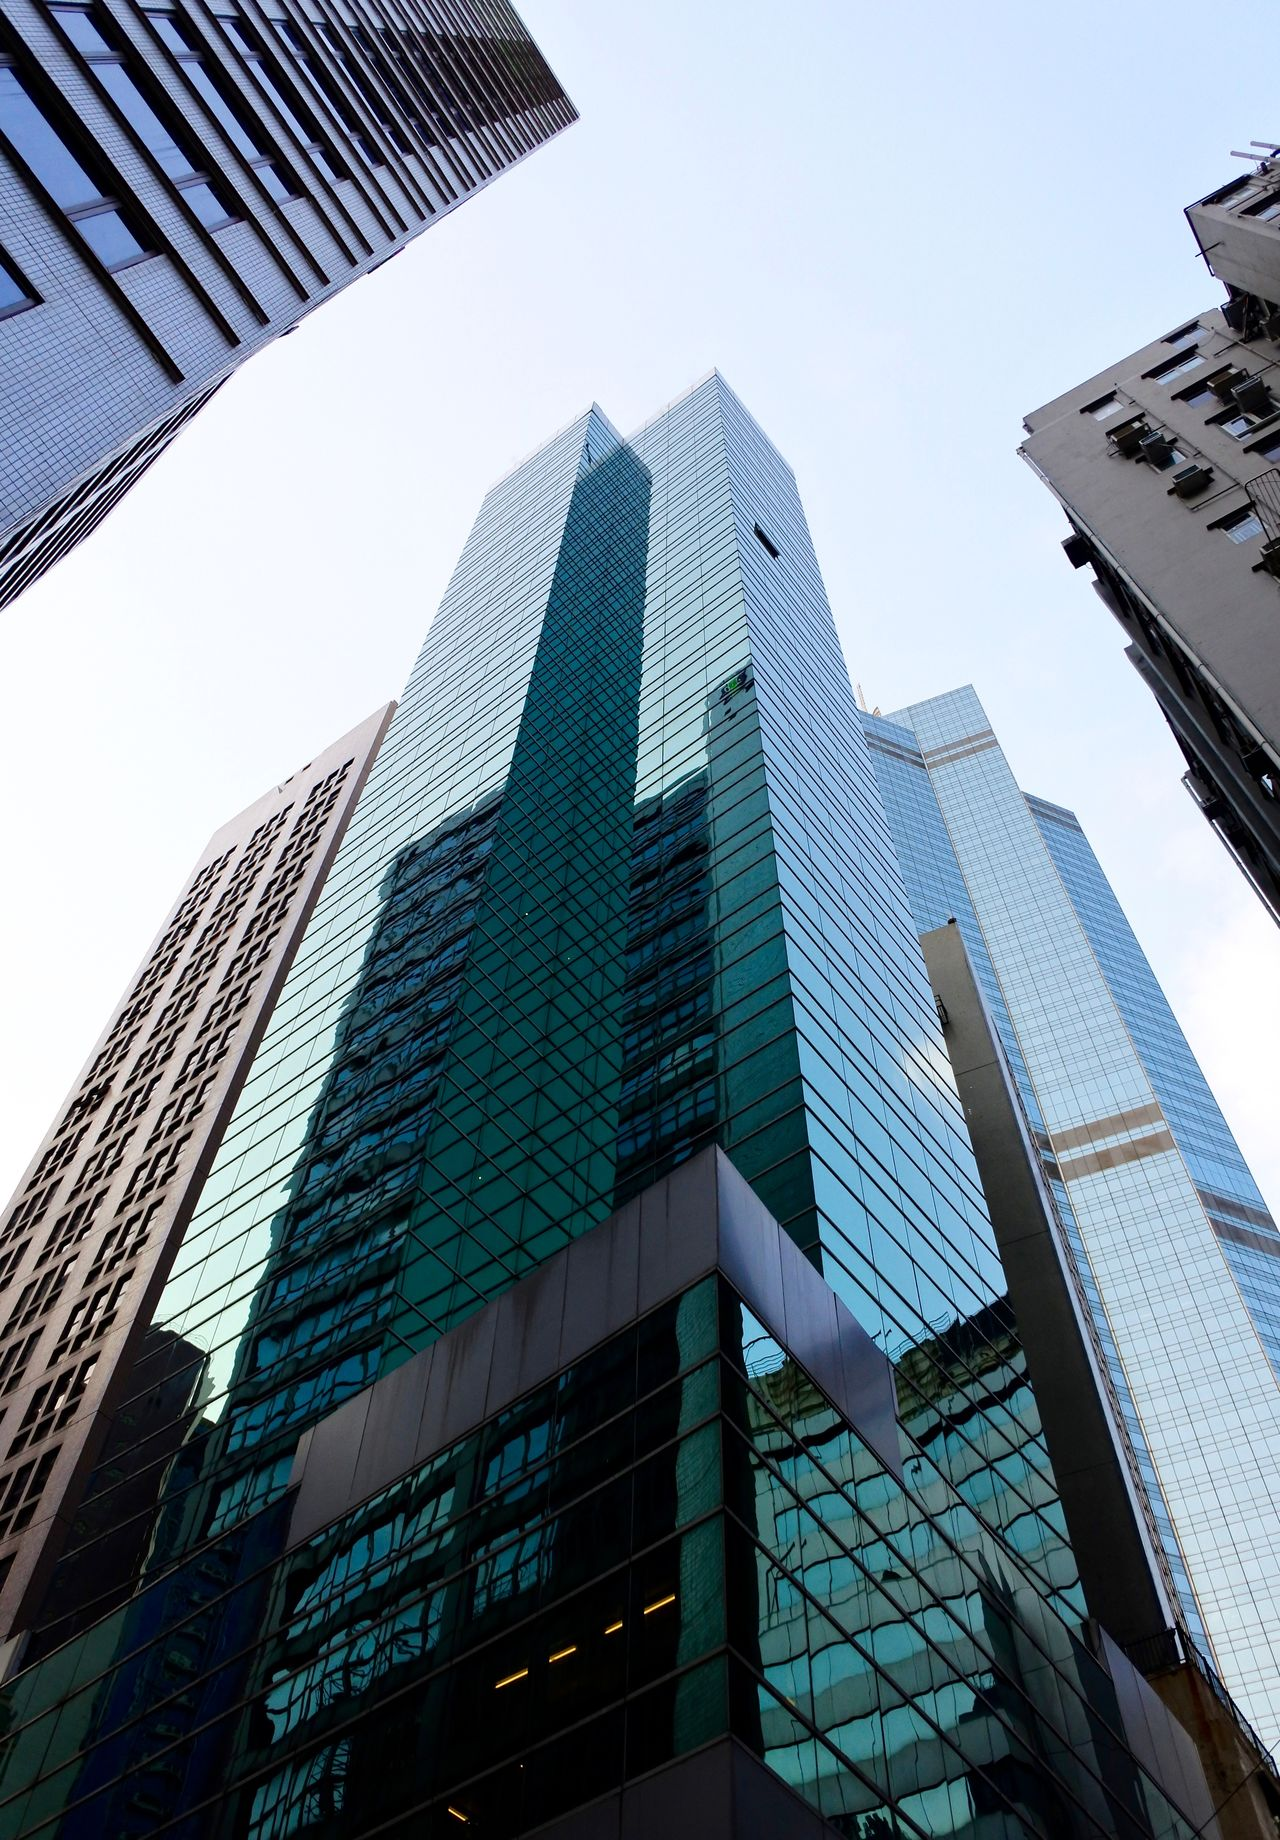 Architecture Building Exterior Building Reflections Built Structure Business EyeEm Best Shots Financial District  Glass - Material Glass Building Glass Reflections Glass Skyscraper Hong Kong Hong Kong Architecture Hong Kong Building Hong Kong Skyscraper Low Angle View Modern Office Building Skyscraper Skyscrapers Tall - High Tall Buildings Tower The City Light Minimalist Architecture